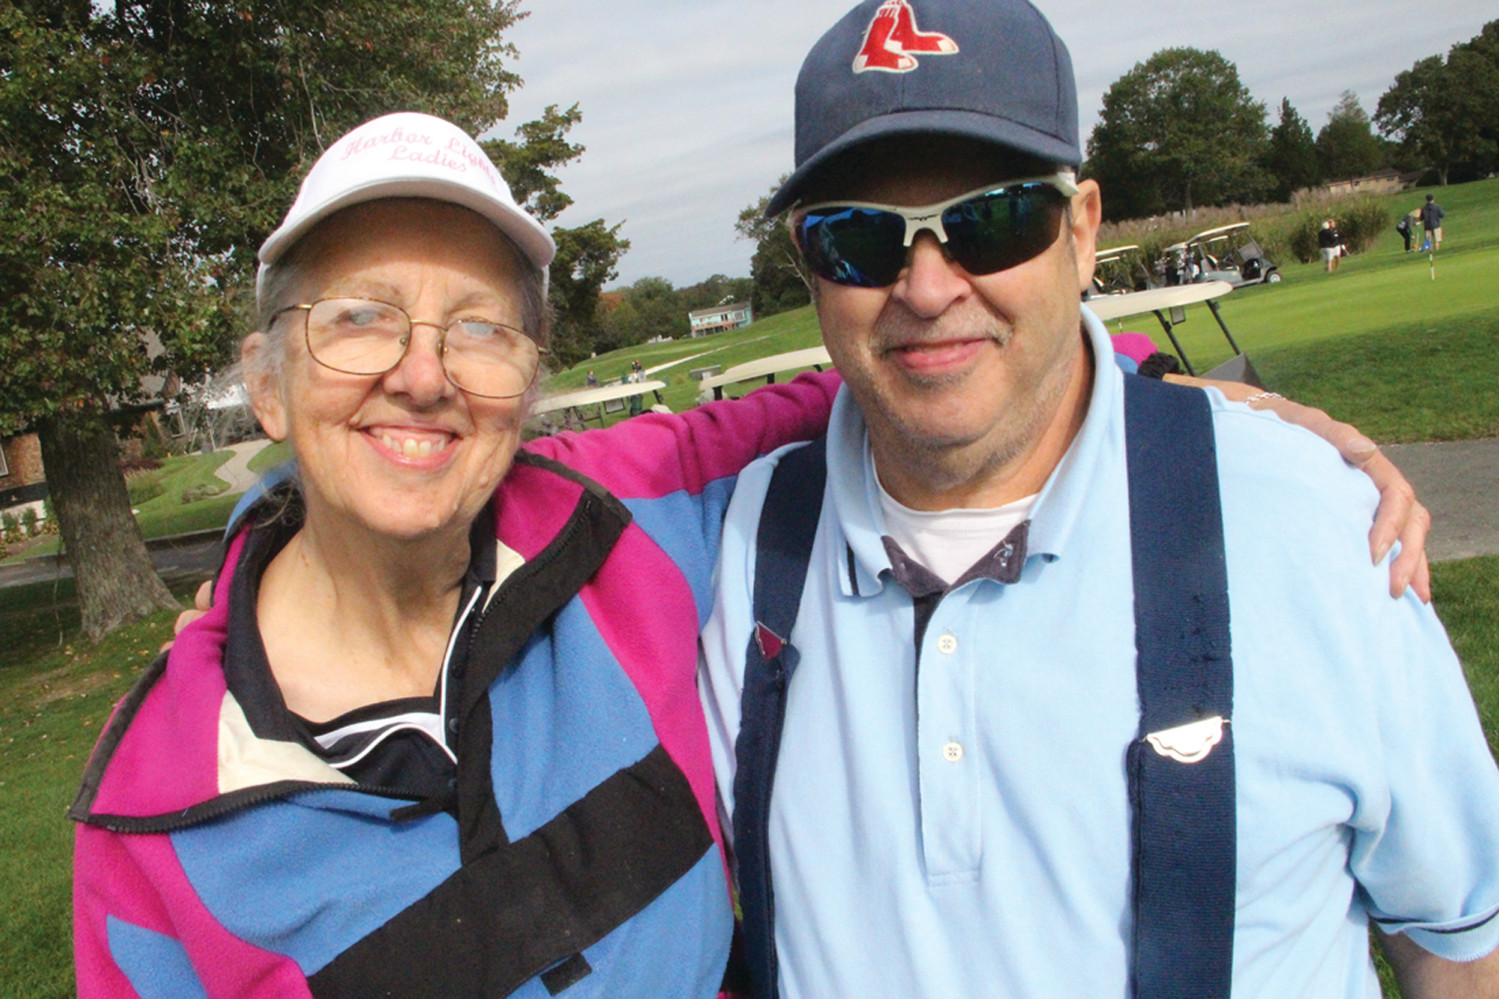 THERE FOR ROY: Roy Ellsworth and his sister, Pat Jankowski, pose before the shotgun start to Roy's Day at Harbor Lights.